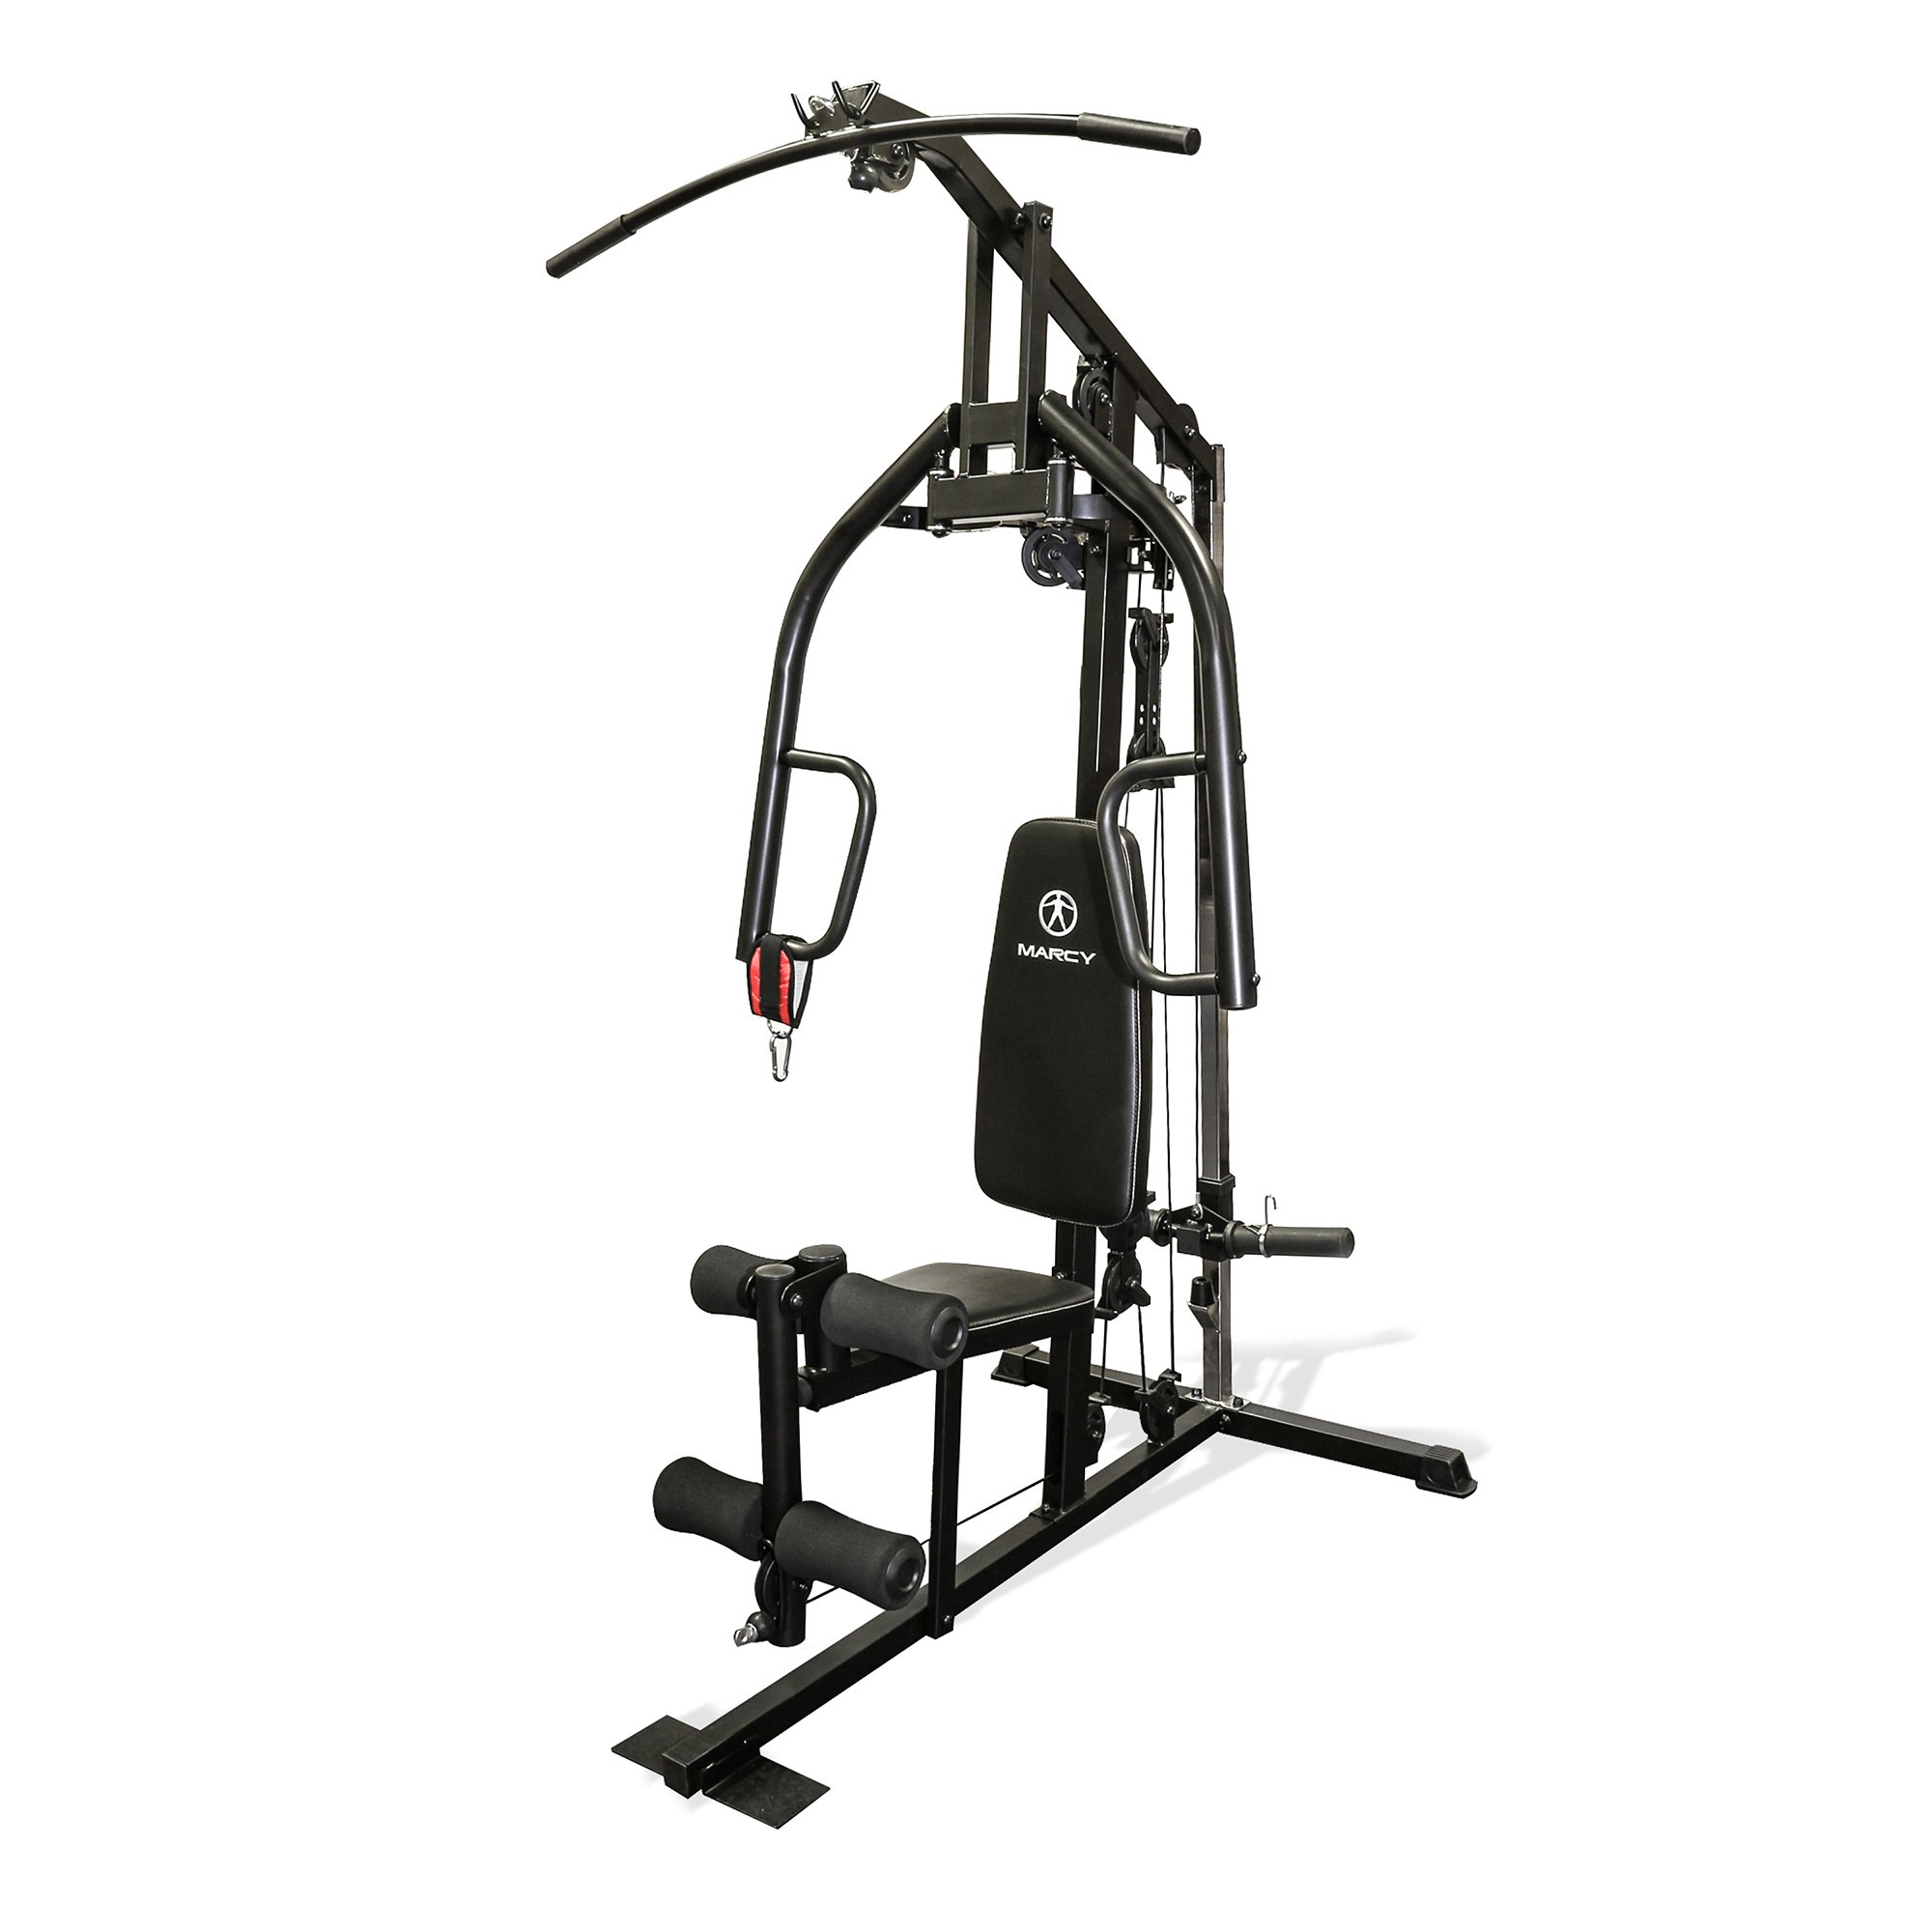 Marcy Free Weight Strength Training Home Exercise Workout Gym Machine Equipment by Marcy Fitness